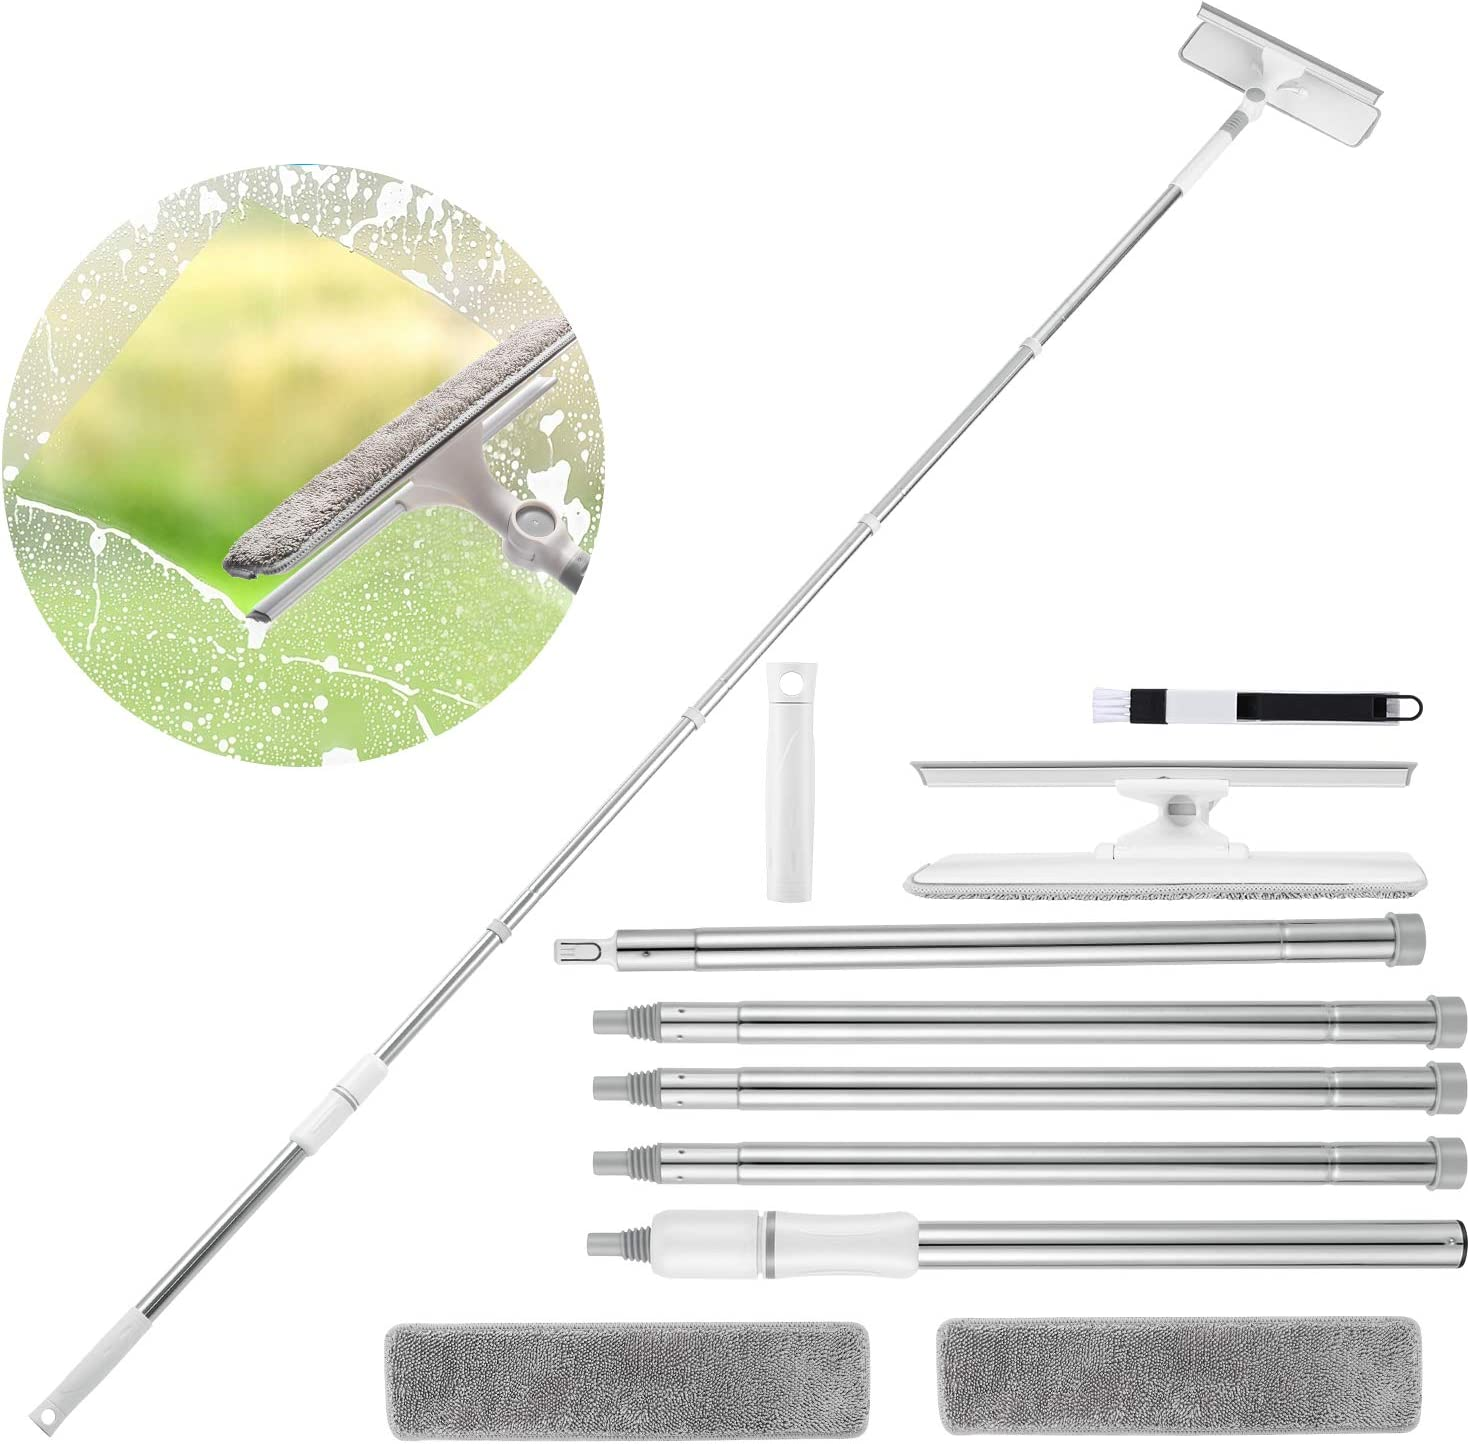 Window Squeegee Cleaner Homga Selling 2 New item Tool 1 in Cleaning with